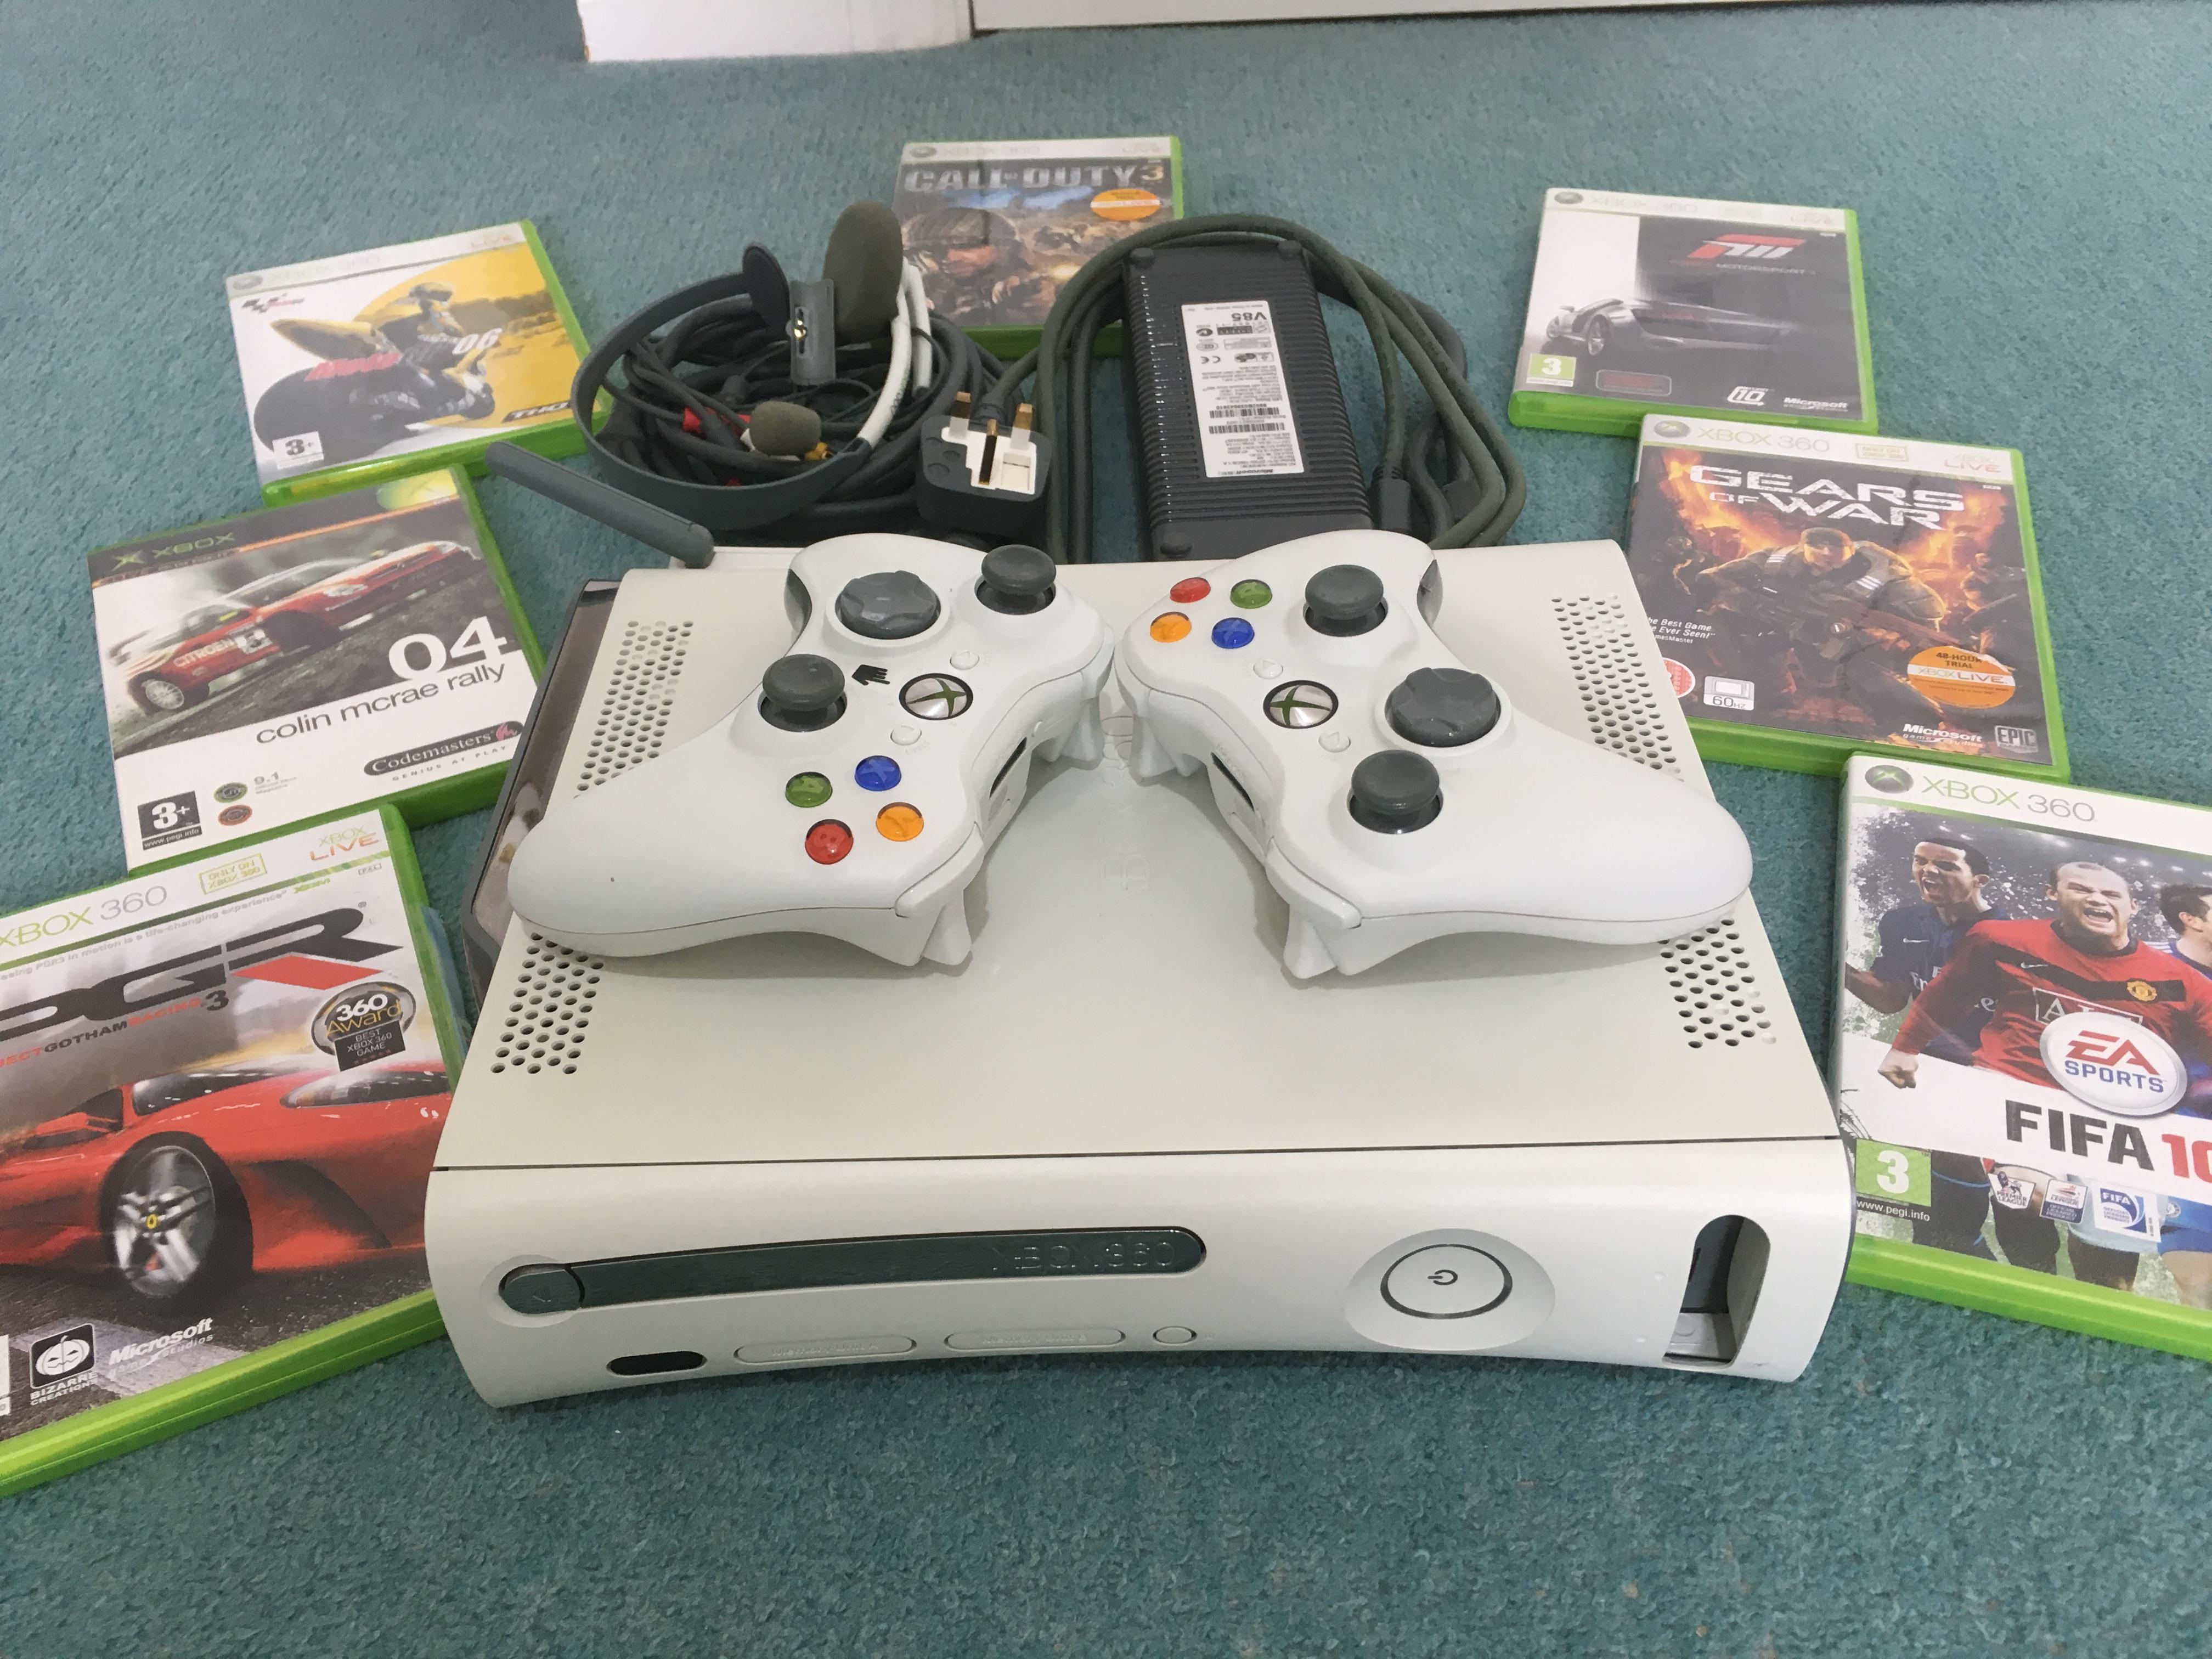 XBOX360 CONSOLE + GAMES TWO WIRELESS PADS ALL CABLES